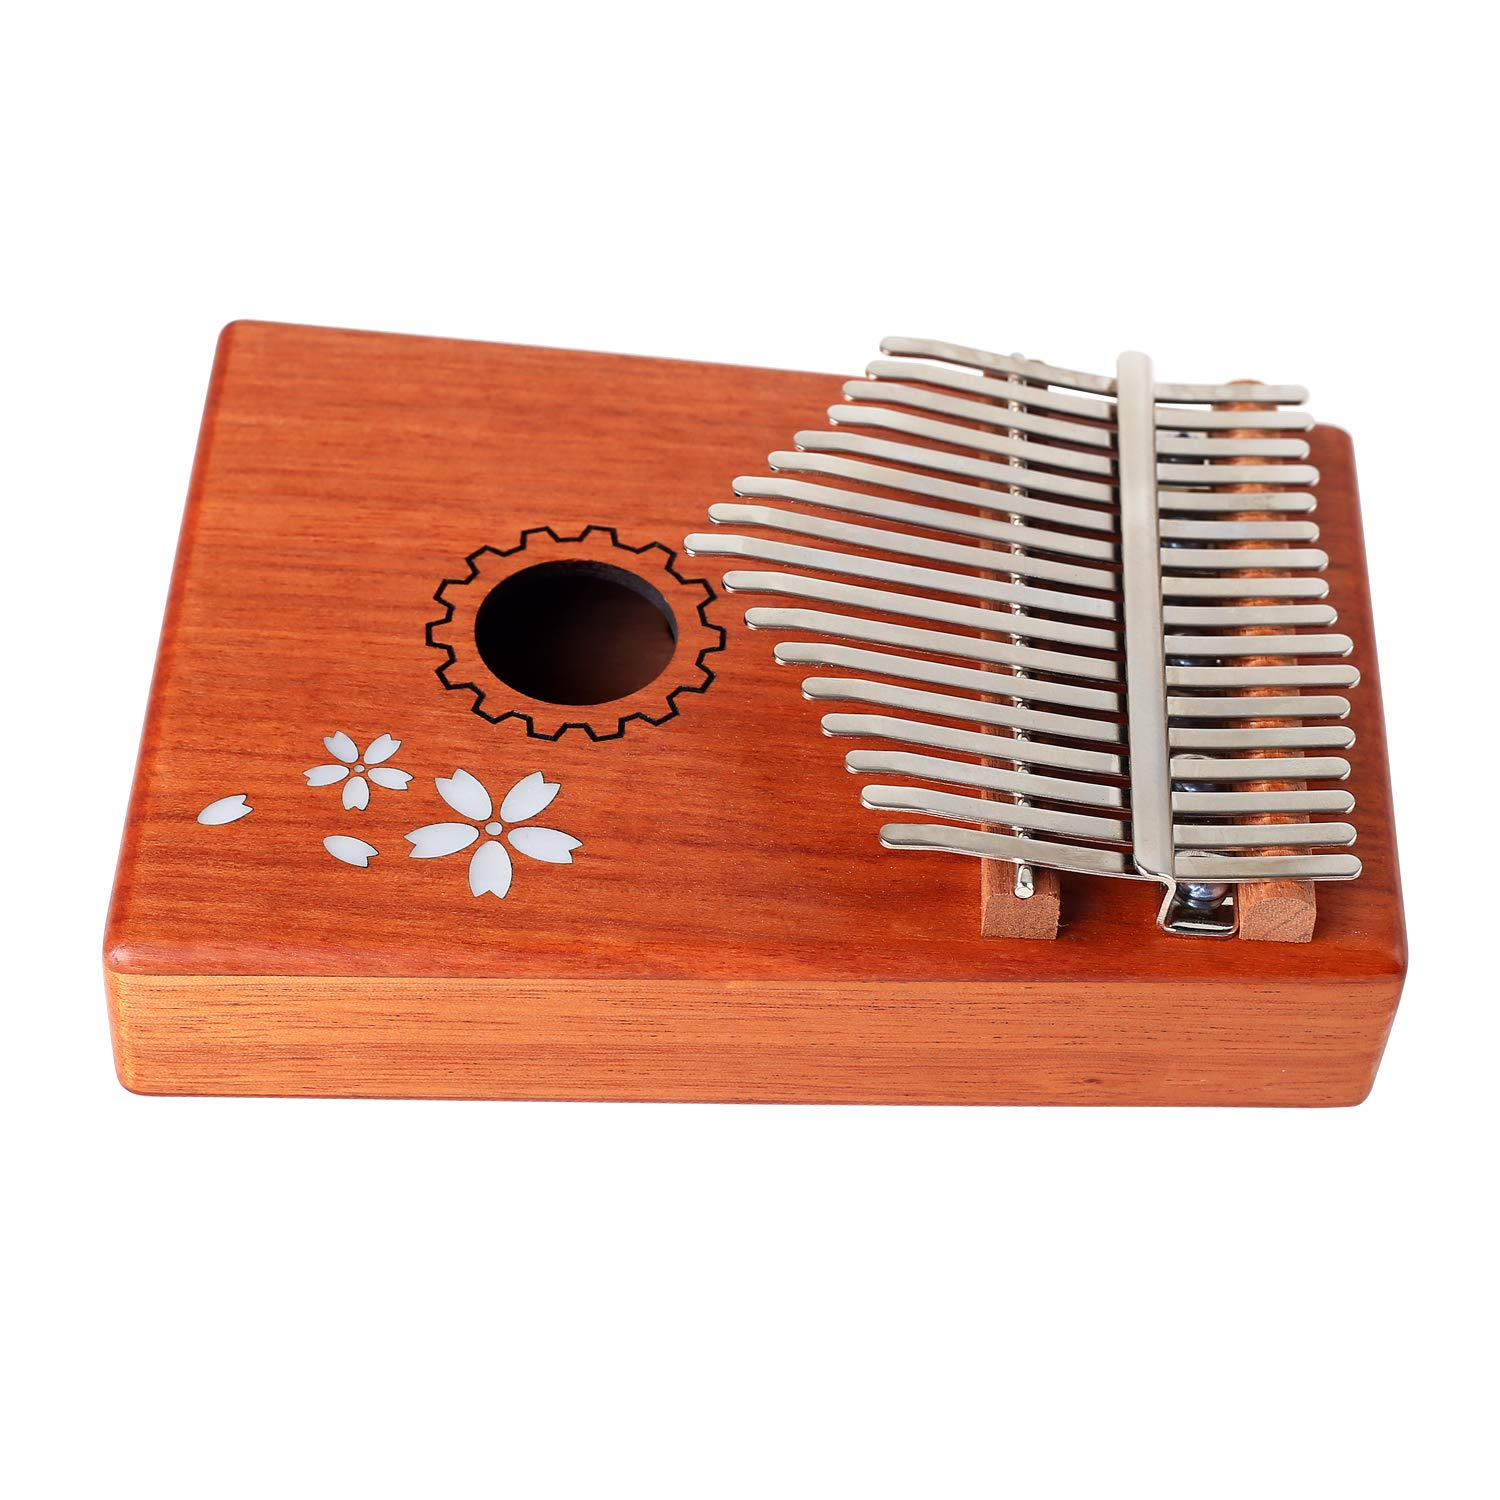 17-Key Thumb Piano - Kalimba, an Awesome Musical Talent Cultivating Music Instrument Gift Made for Beginners not only kids, Friends, Music Lovers